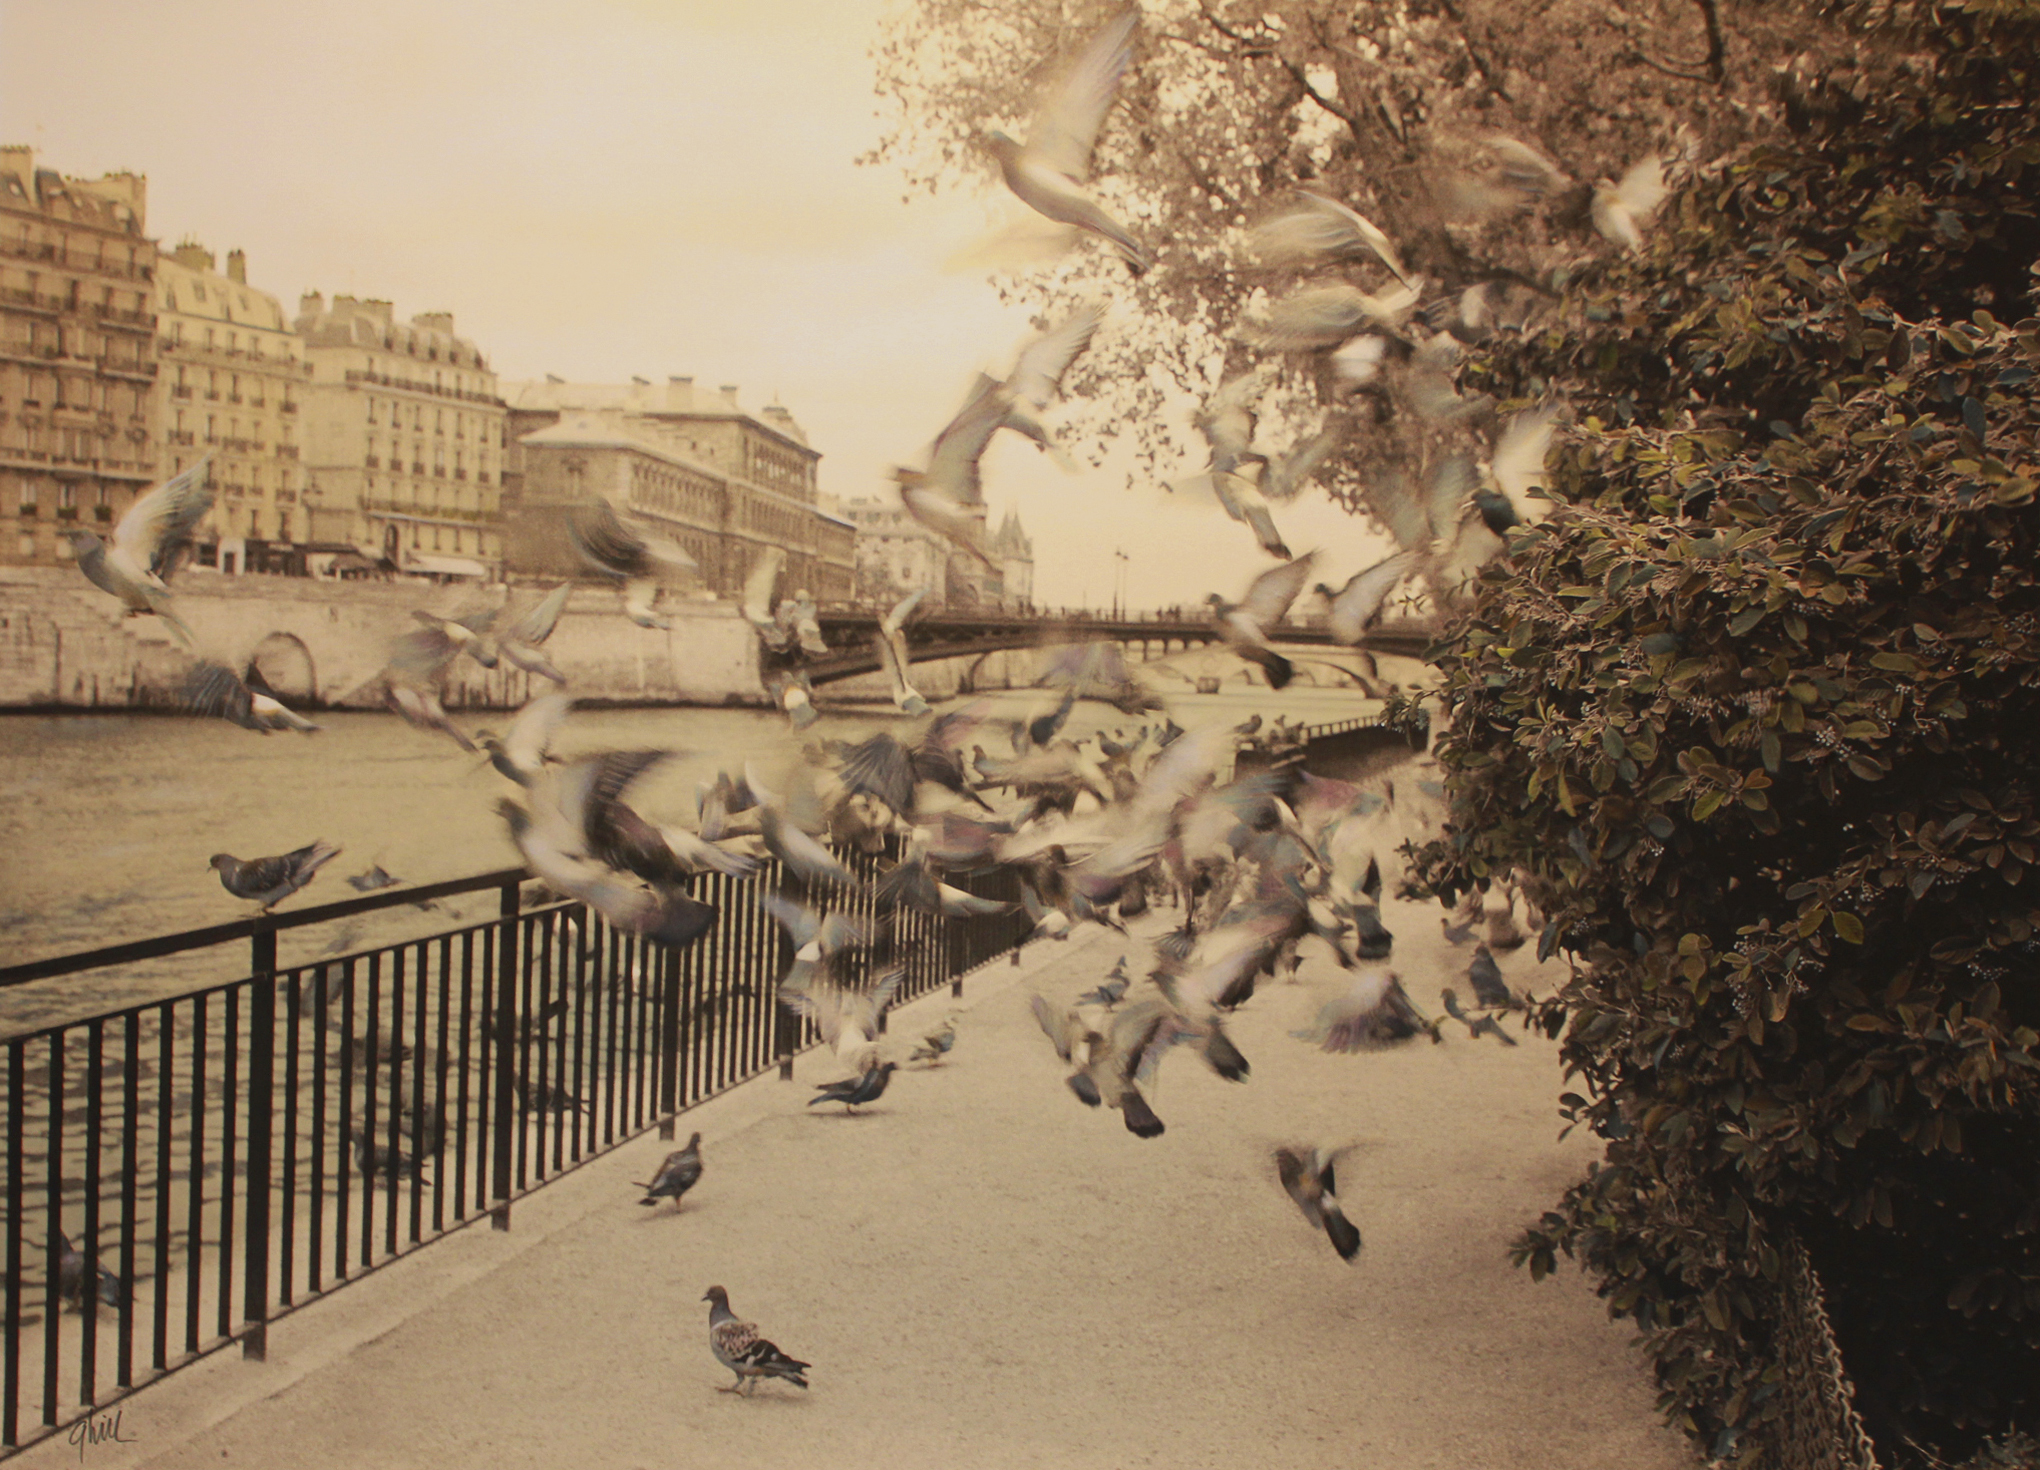 Birds of Paradise . Paris, France . Beginning at the End . Gail Hill . 2013